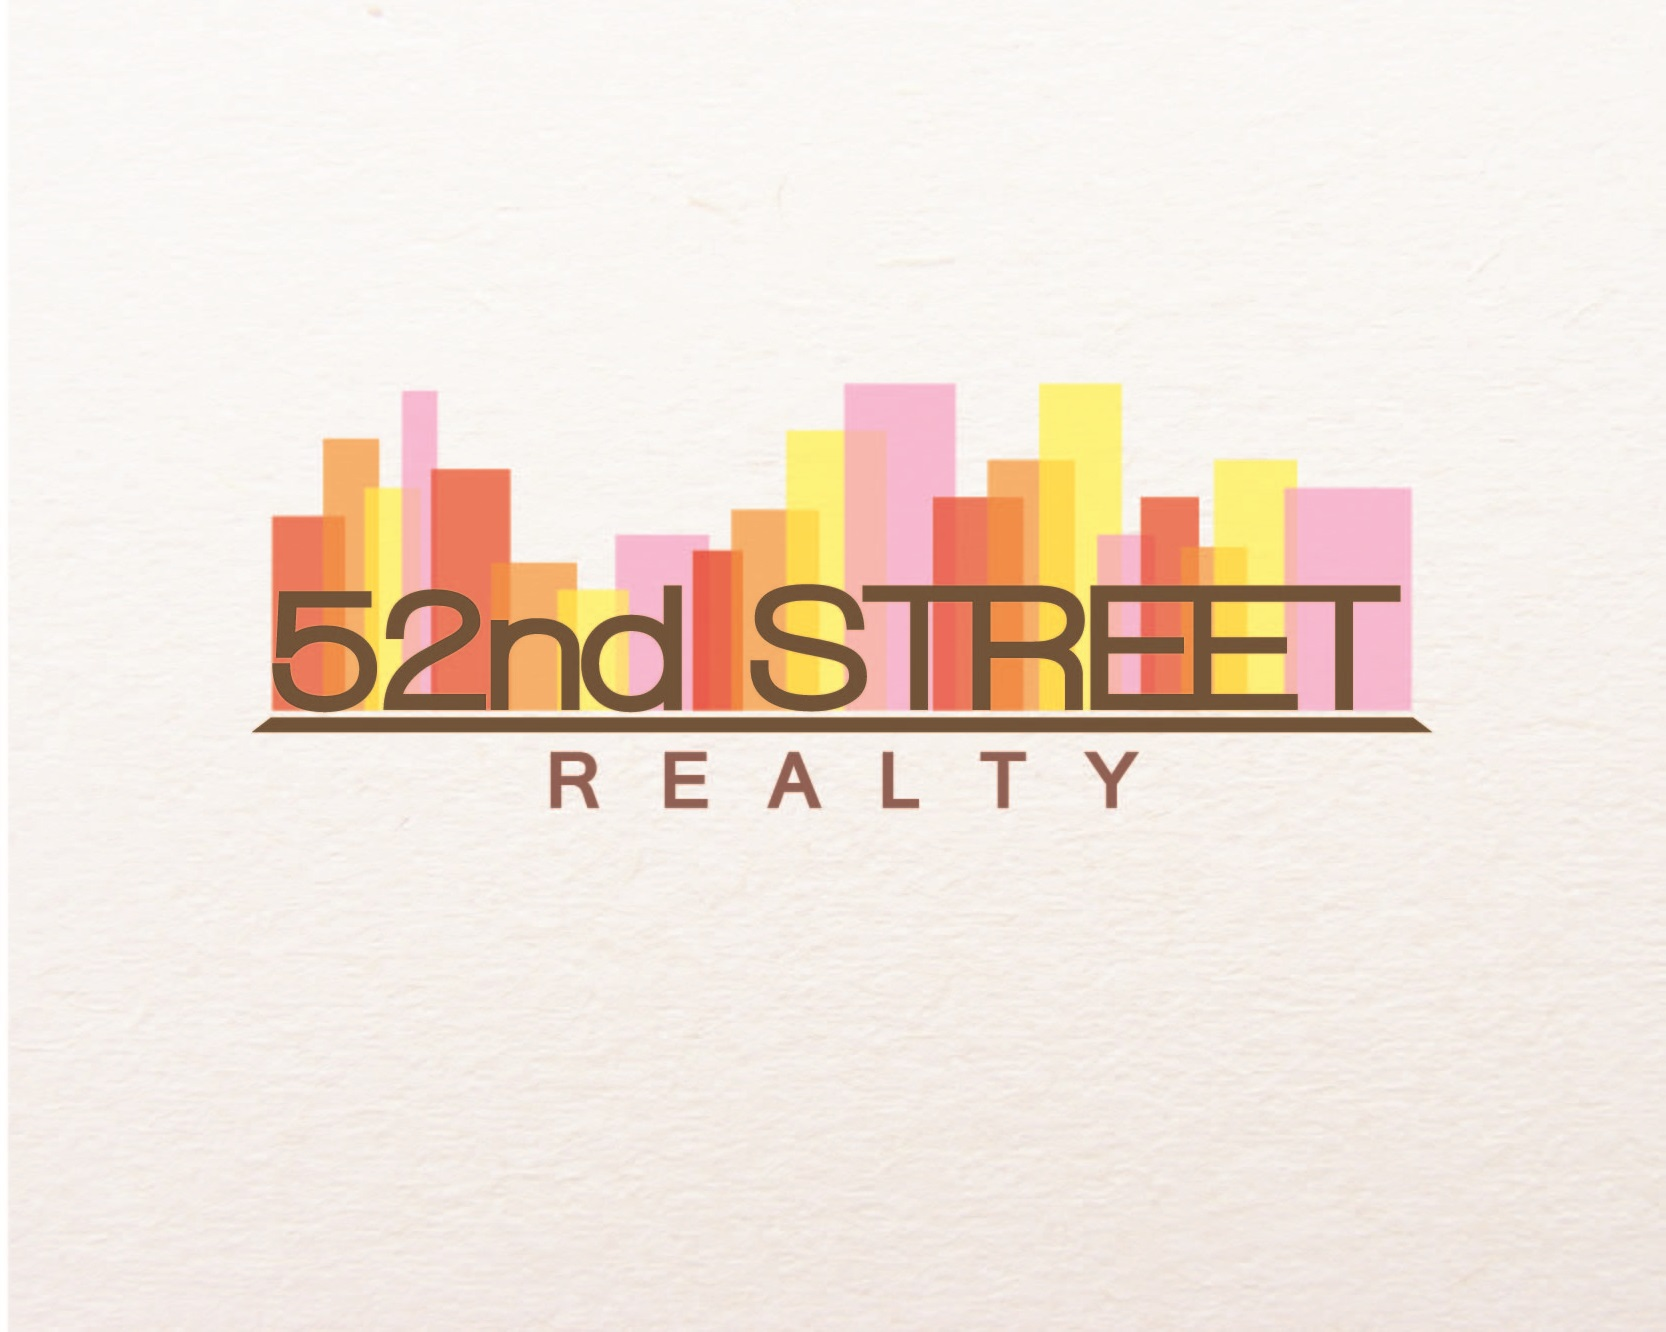 Logo Design by iwyn - Entry No. 39 in the Logo Design Contest 52nd Street Realty Logo Design.